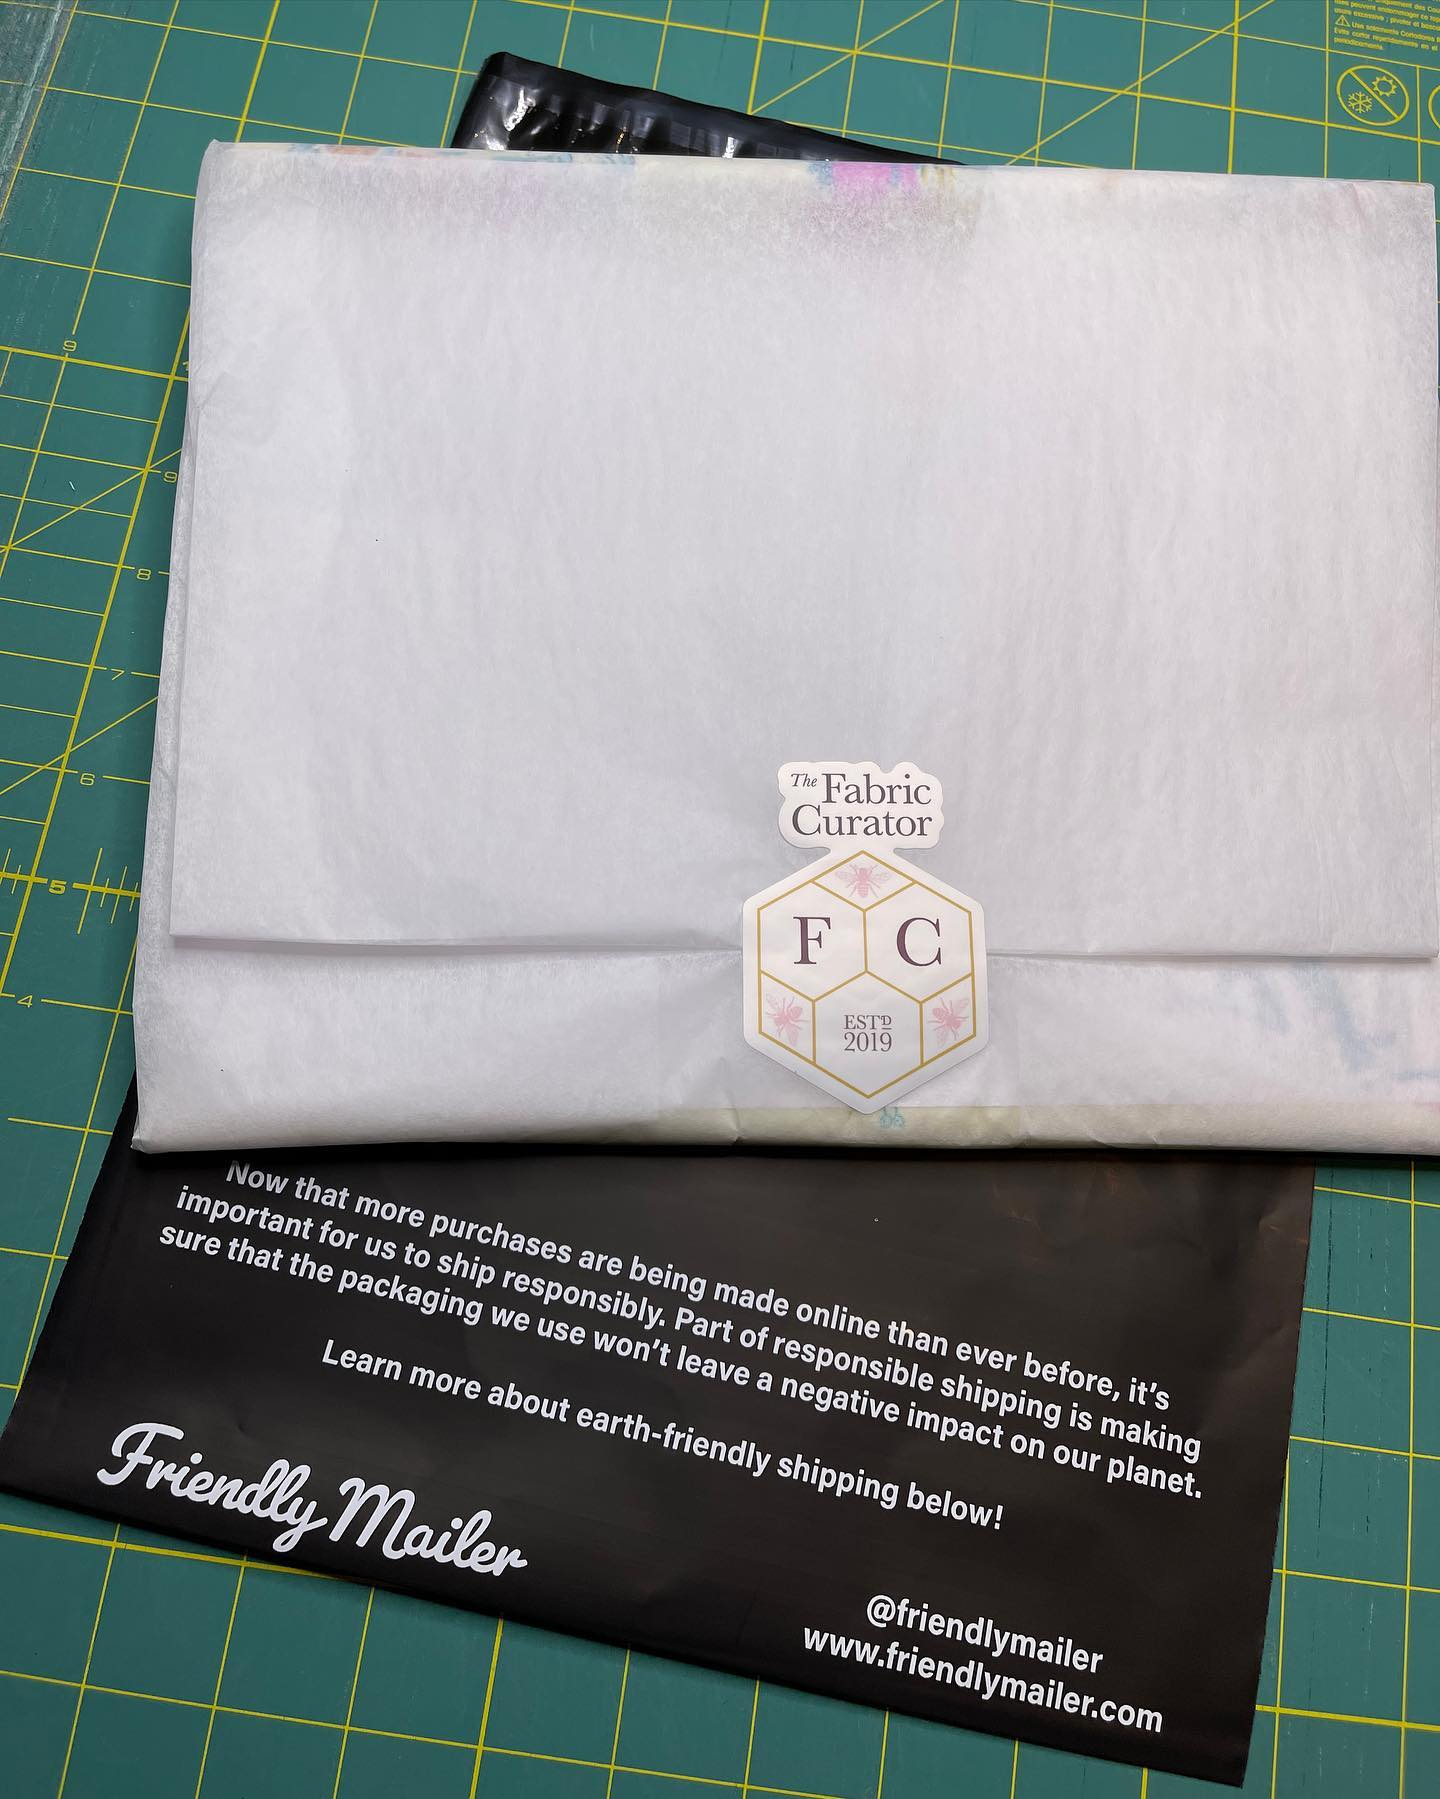 The Fabric Curator Image